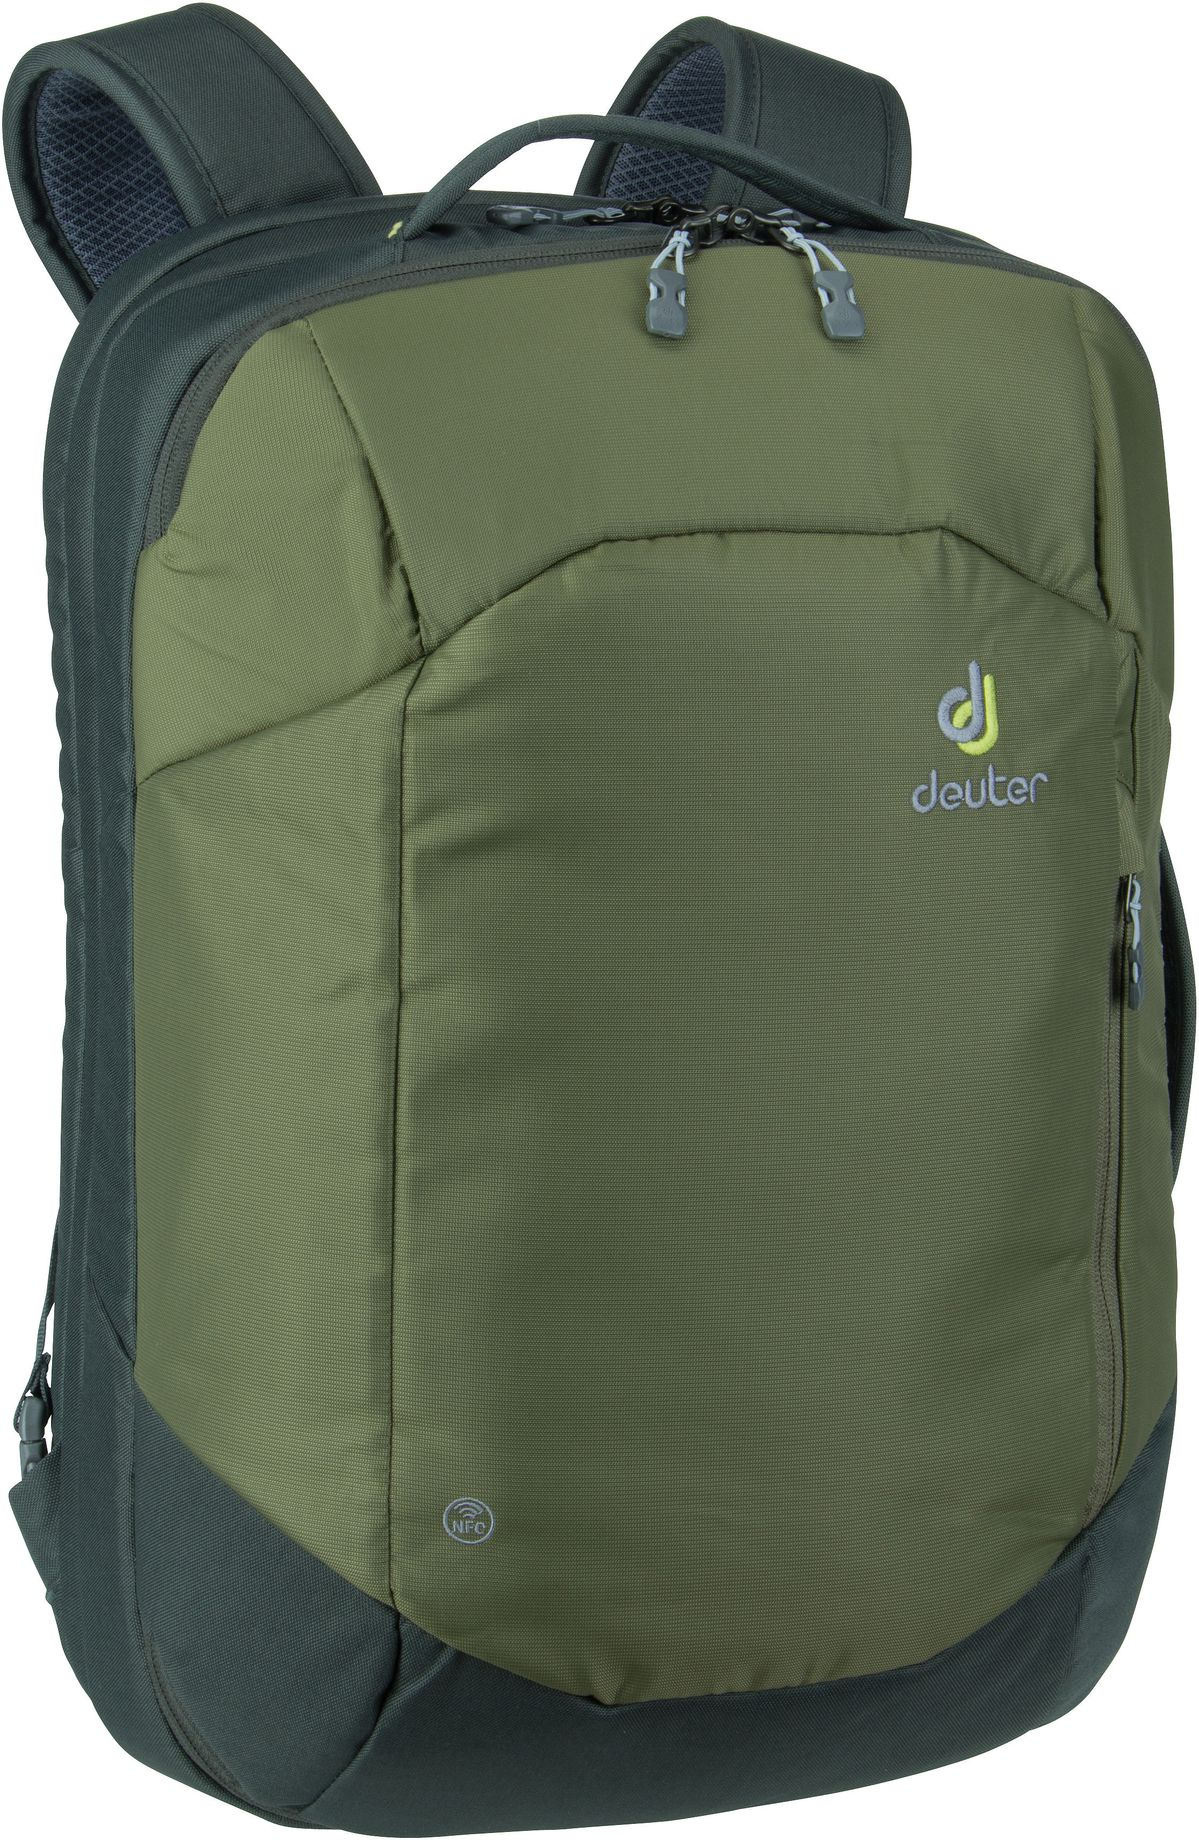 Laptoprucksack Aviant Carry On Pro 36 Khaki/Ivy (36 Liter)